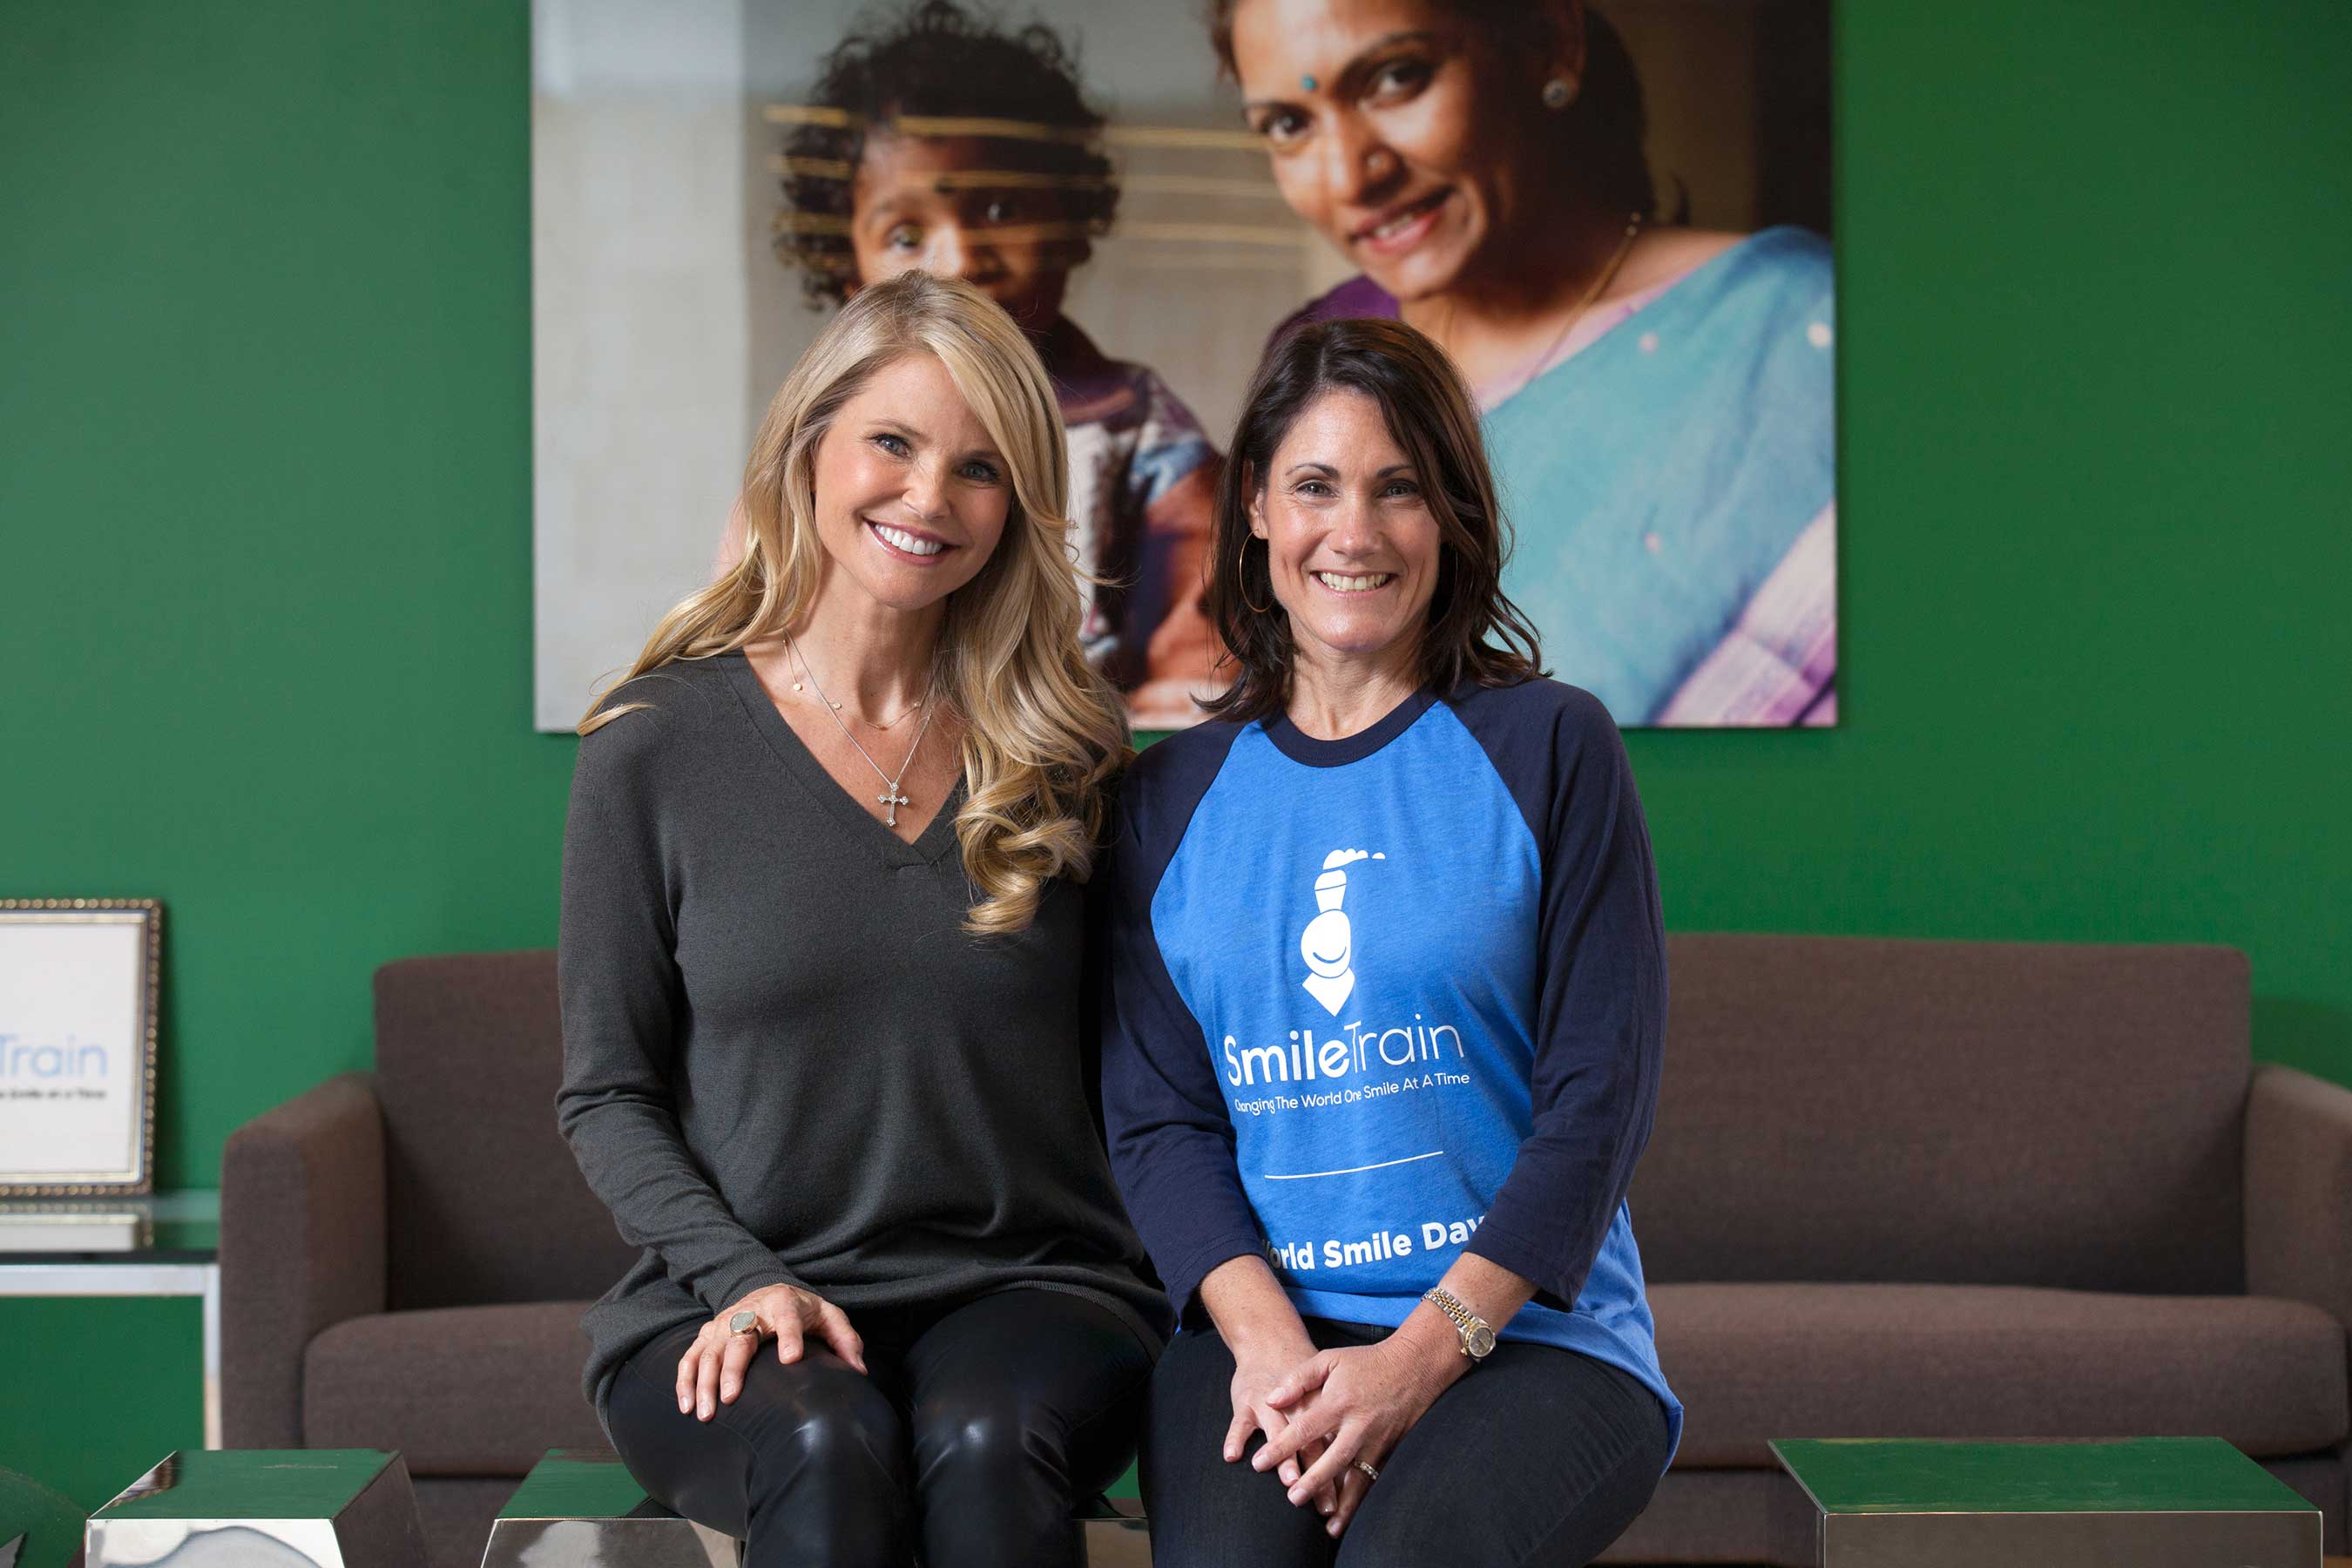 Christie Brinkley and Susannah Schaefer, CEO, Smile Train meet to discuss raising awareness and funding in support of children with clefts across the world.